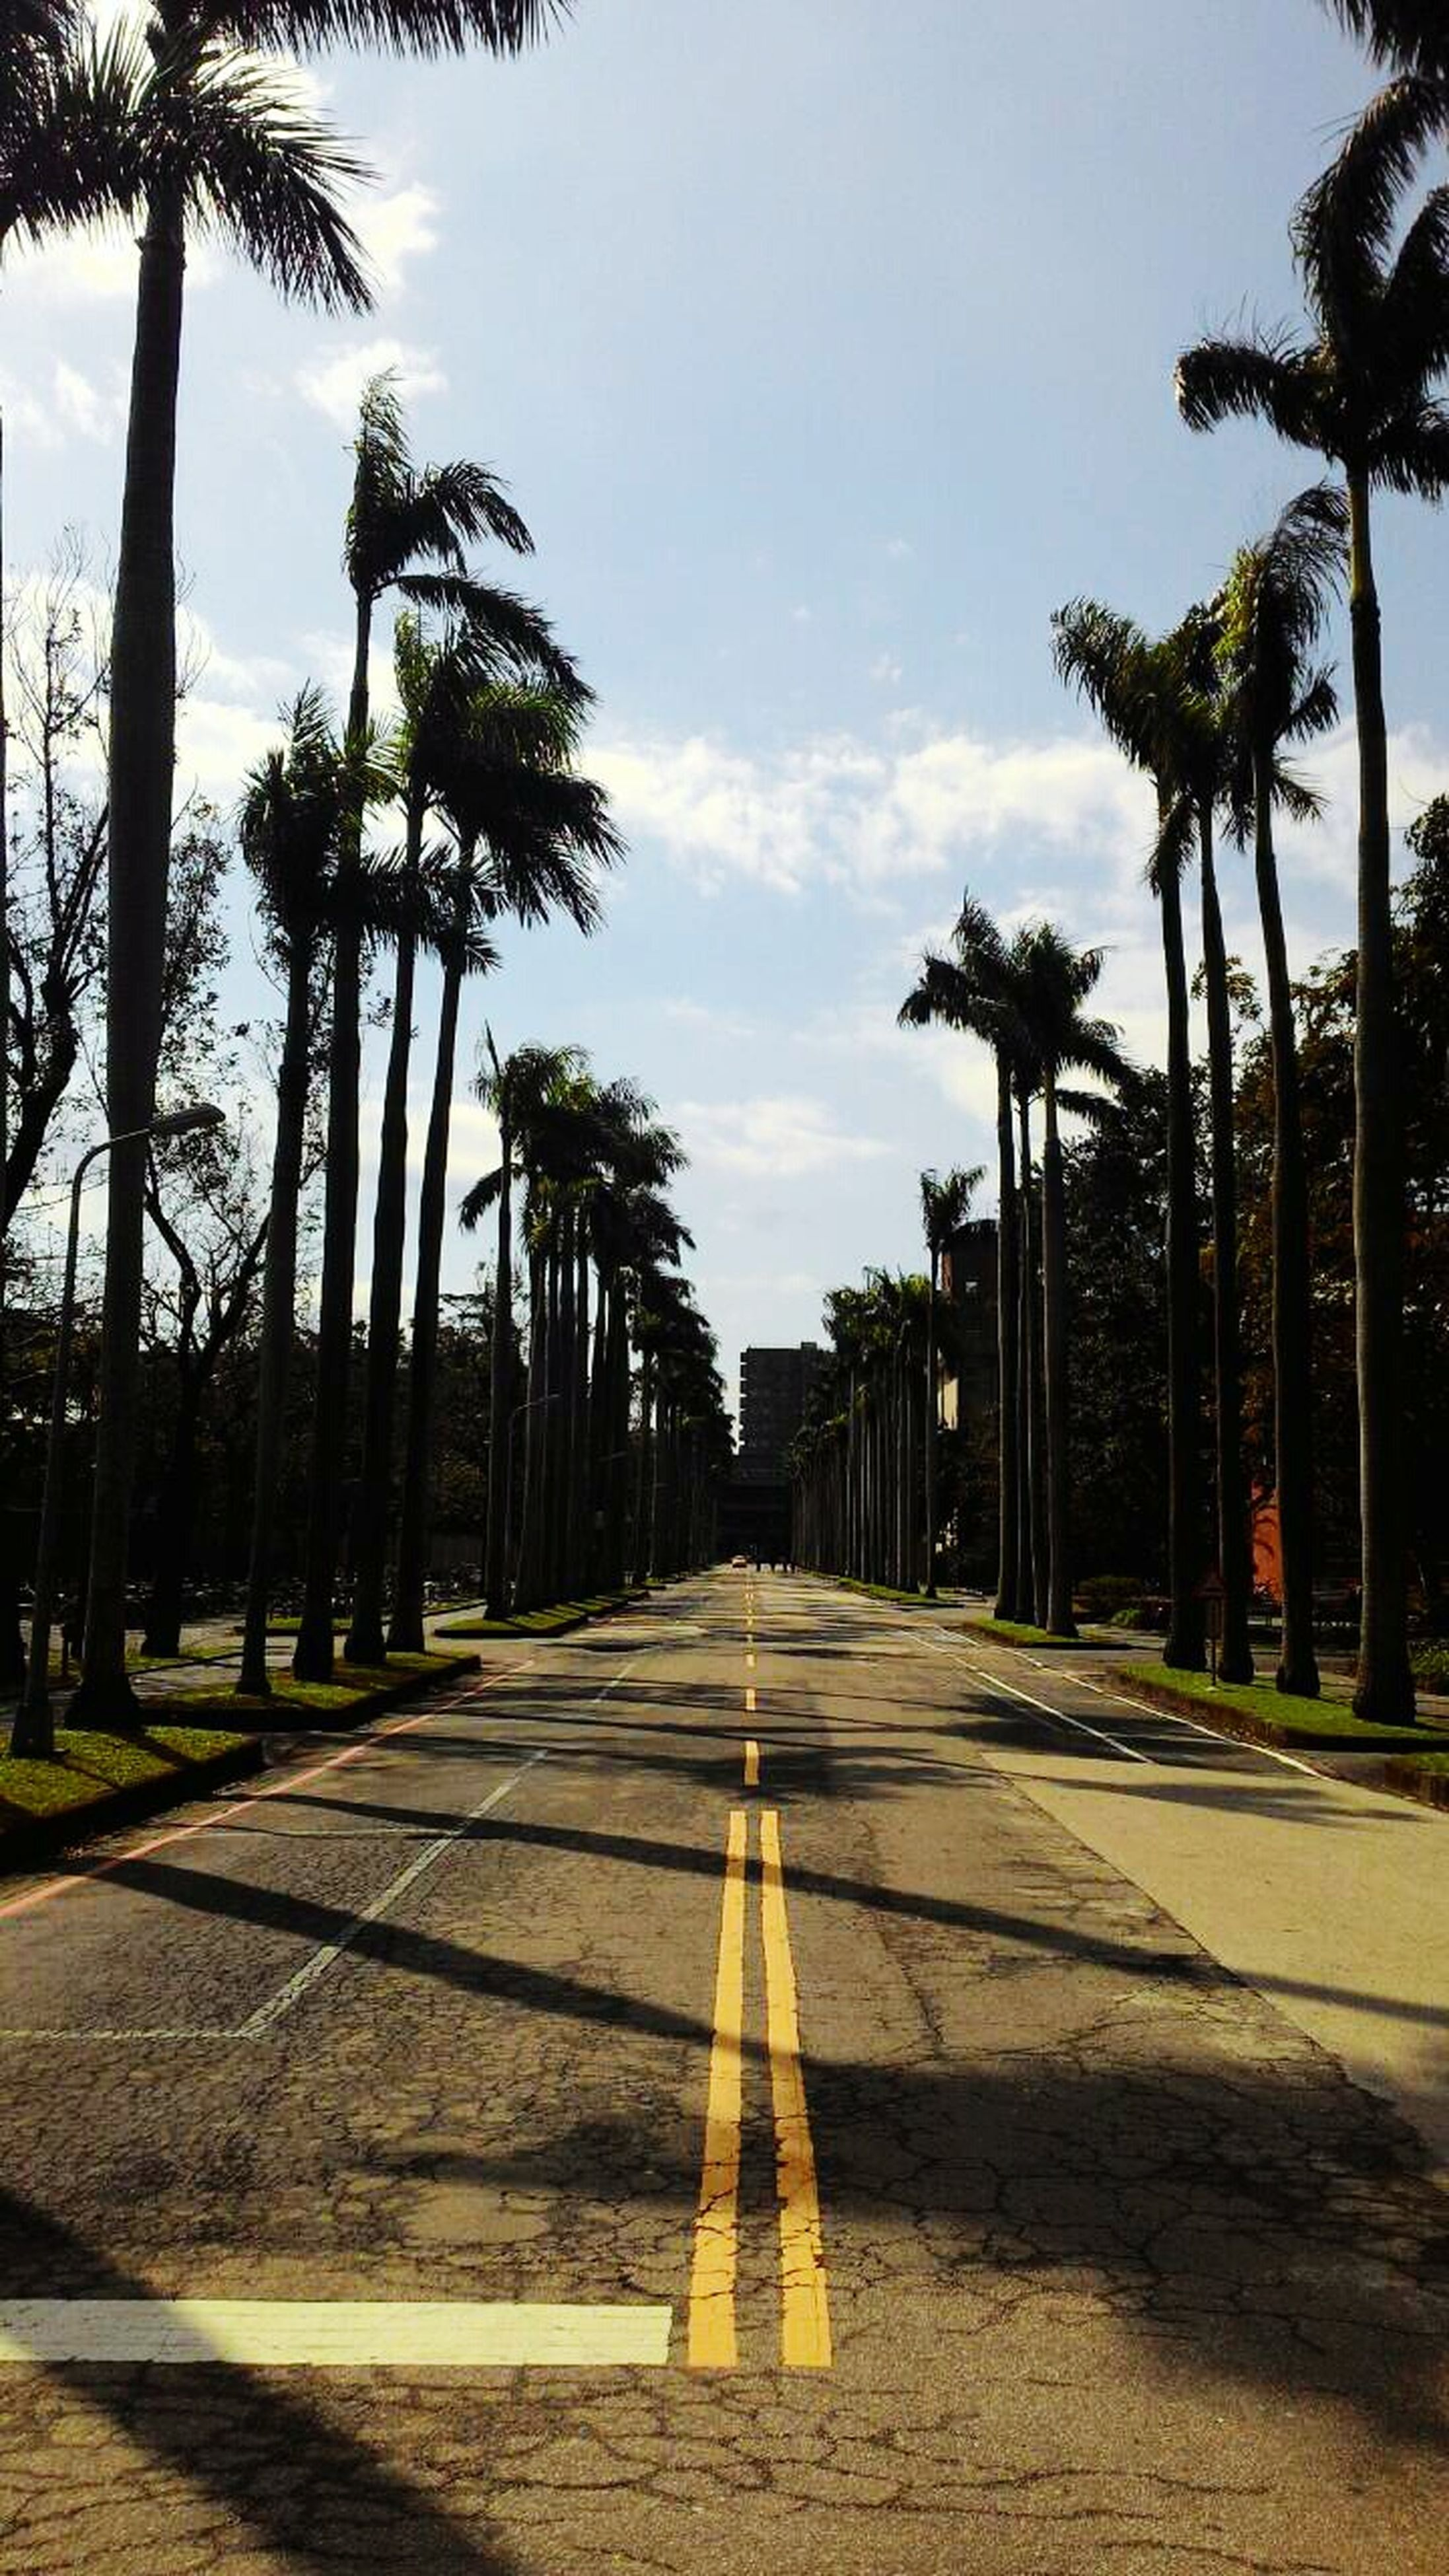 tree, the way forward, palm tree, transportation, road, diminishing perspective, sky, vanishing point, road marking, treelined, street, empty, cloud - sky, tranquility, cloud, growth, outdoors, empty road, nature, long